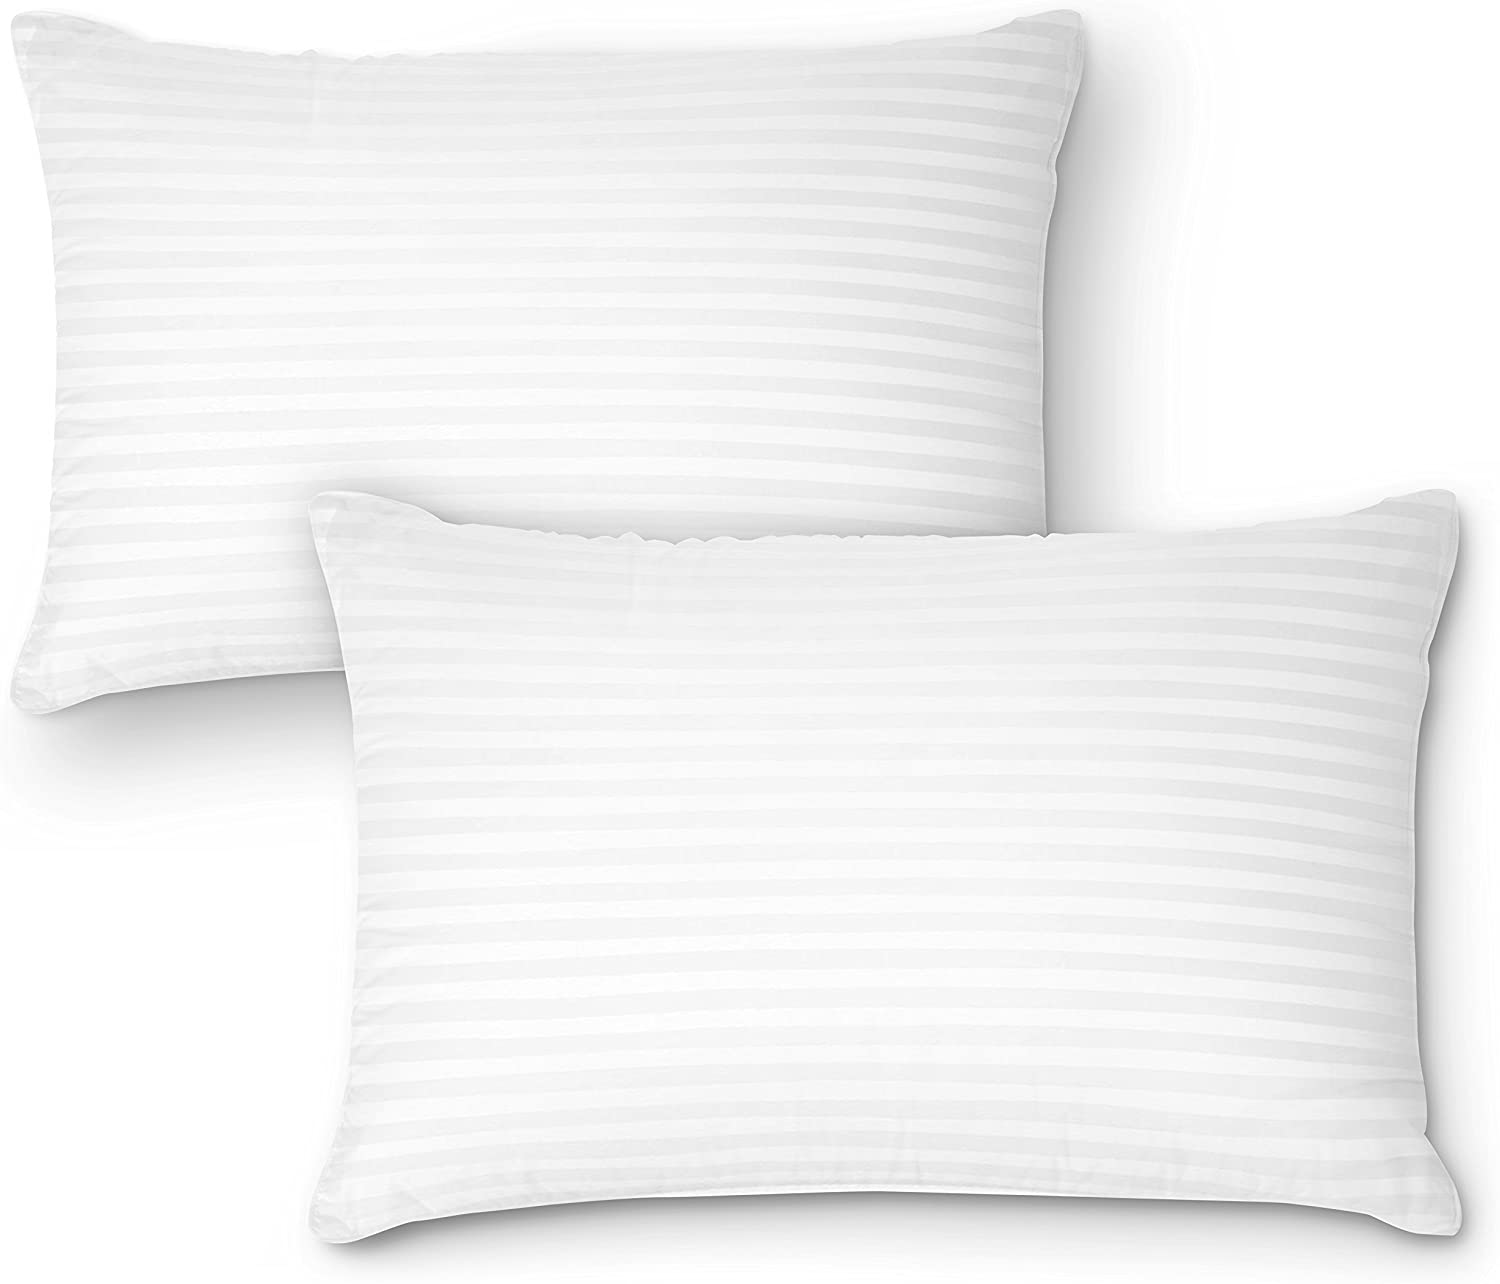 100% Cotton premium gel pillow for side sleepers and back sleepers review. Bet gel pillow loft.